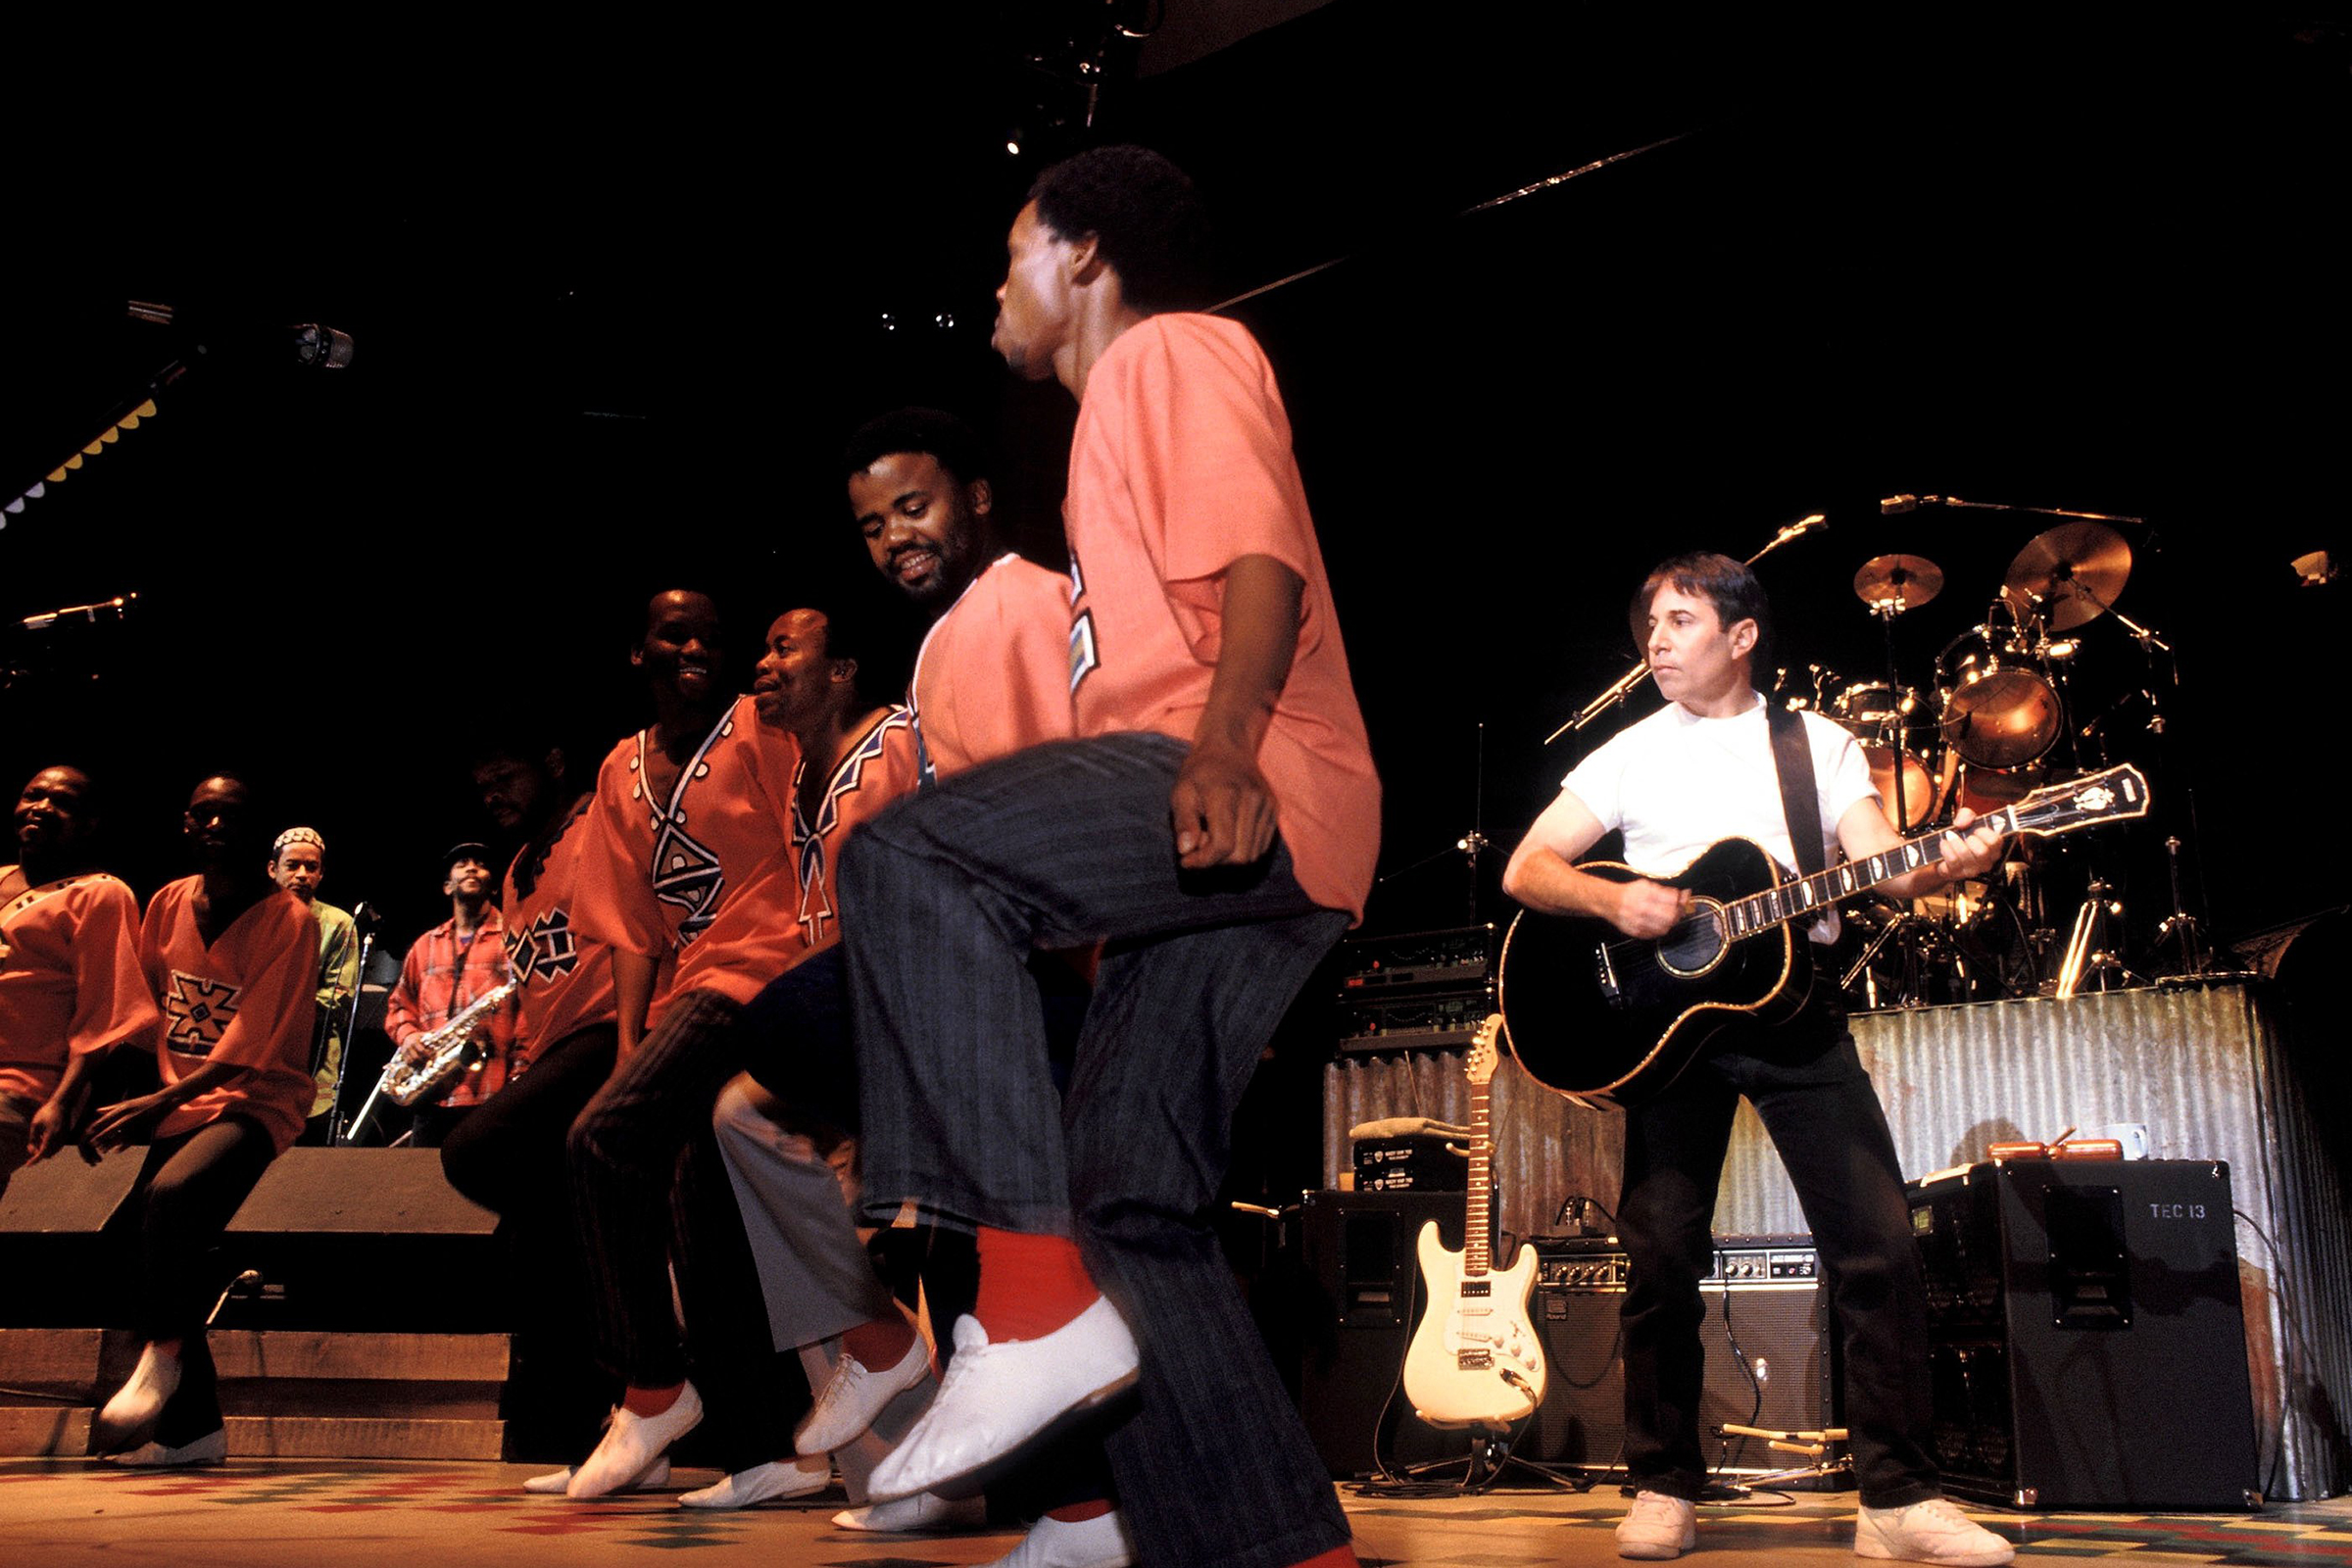 Flashback: Paul Simon Performs 'Diamonds on the Soles of Her Shoes' With Ladysmith Black Mambazo in 1987 - EpicNews